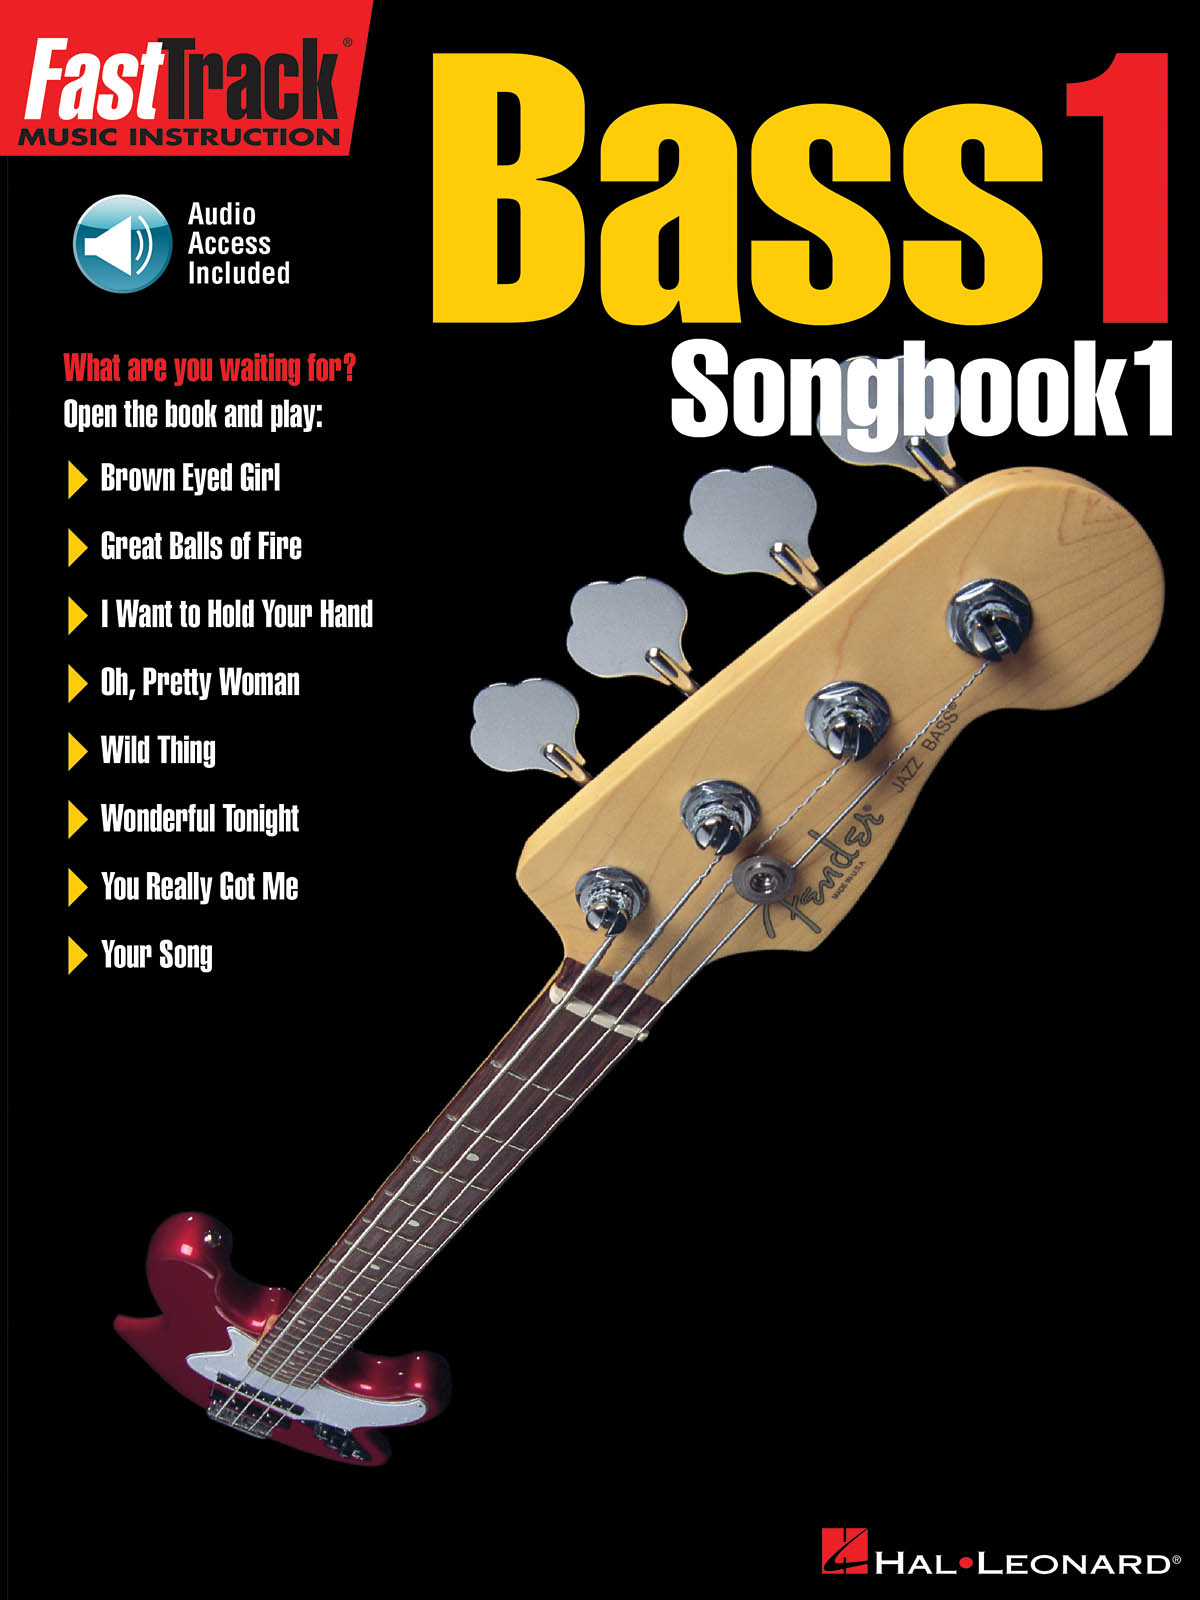 FastTrack - Bass 1 - Songbook 1: Bass Guitar Solo: Mixed Songbook